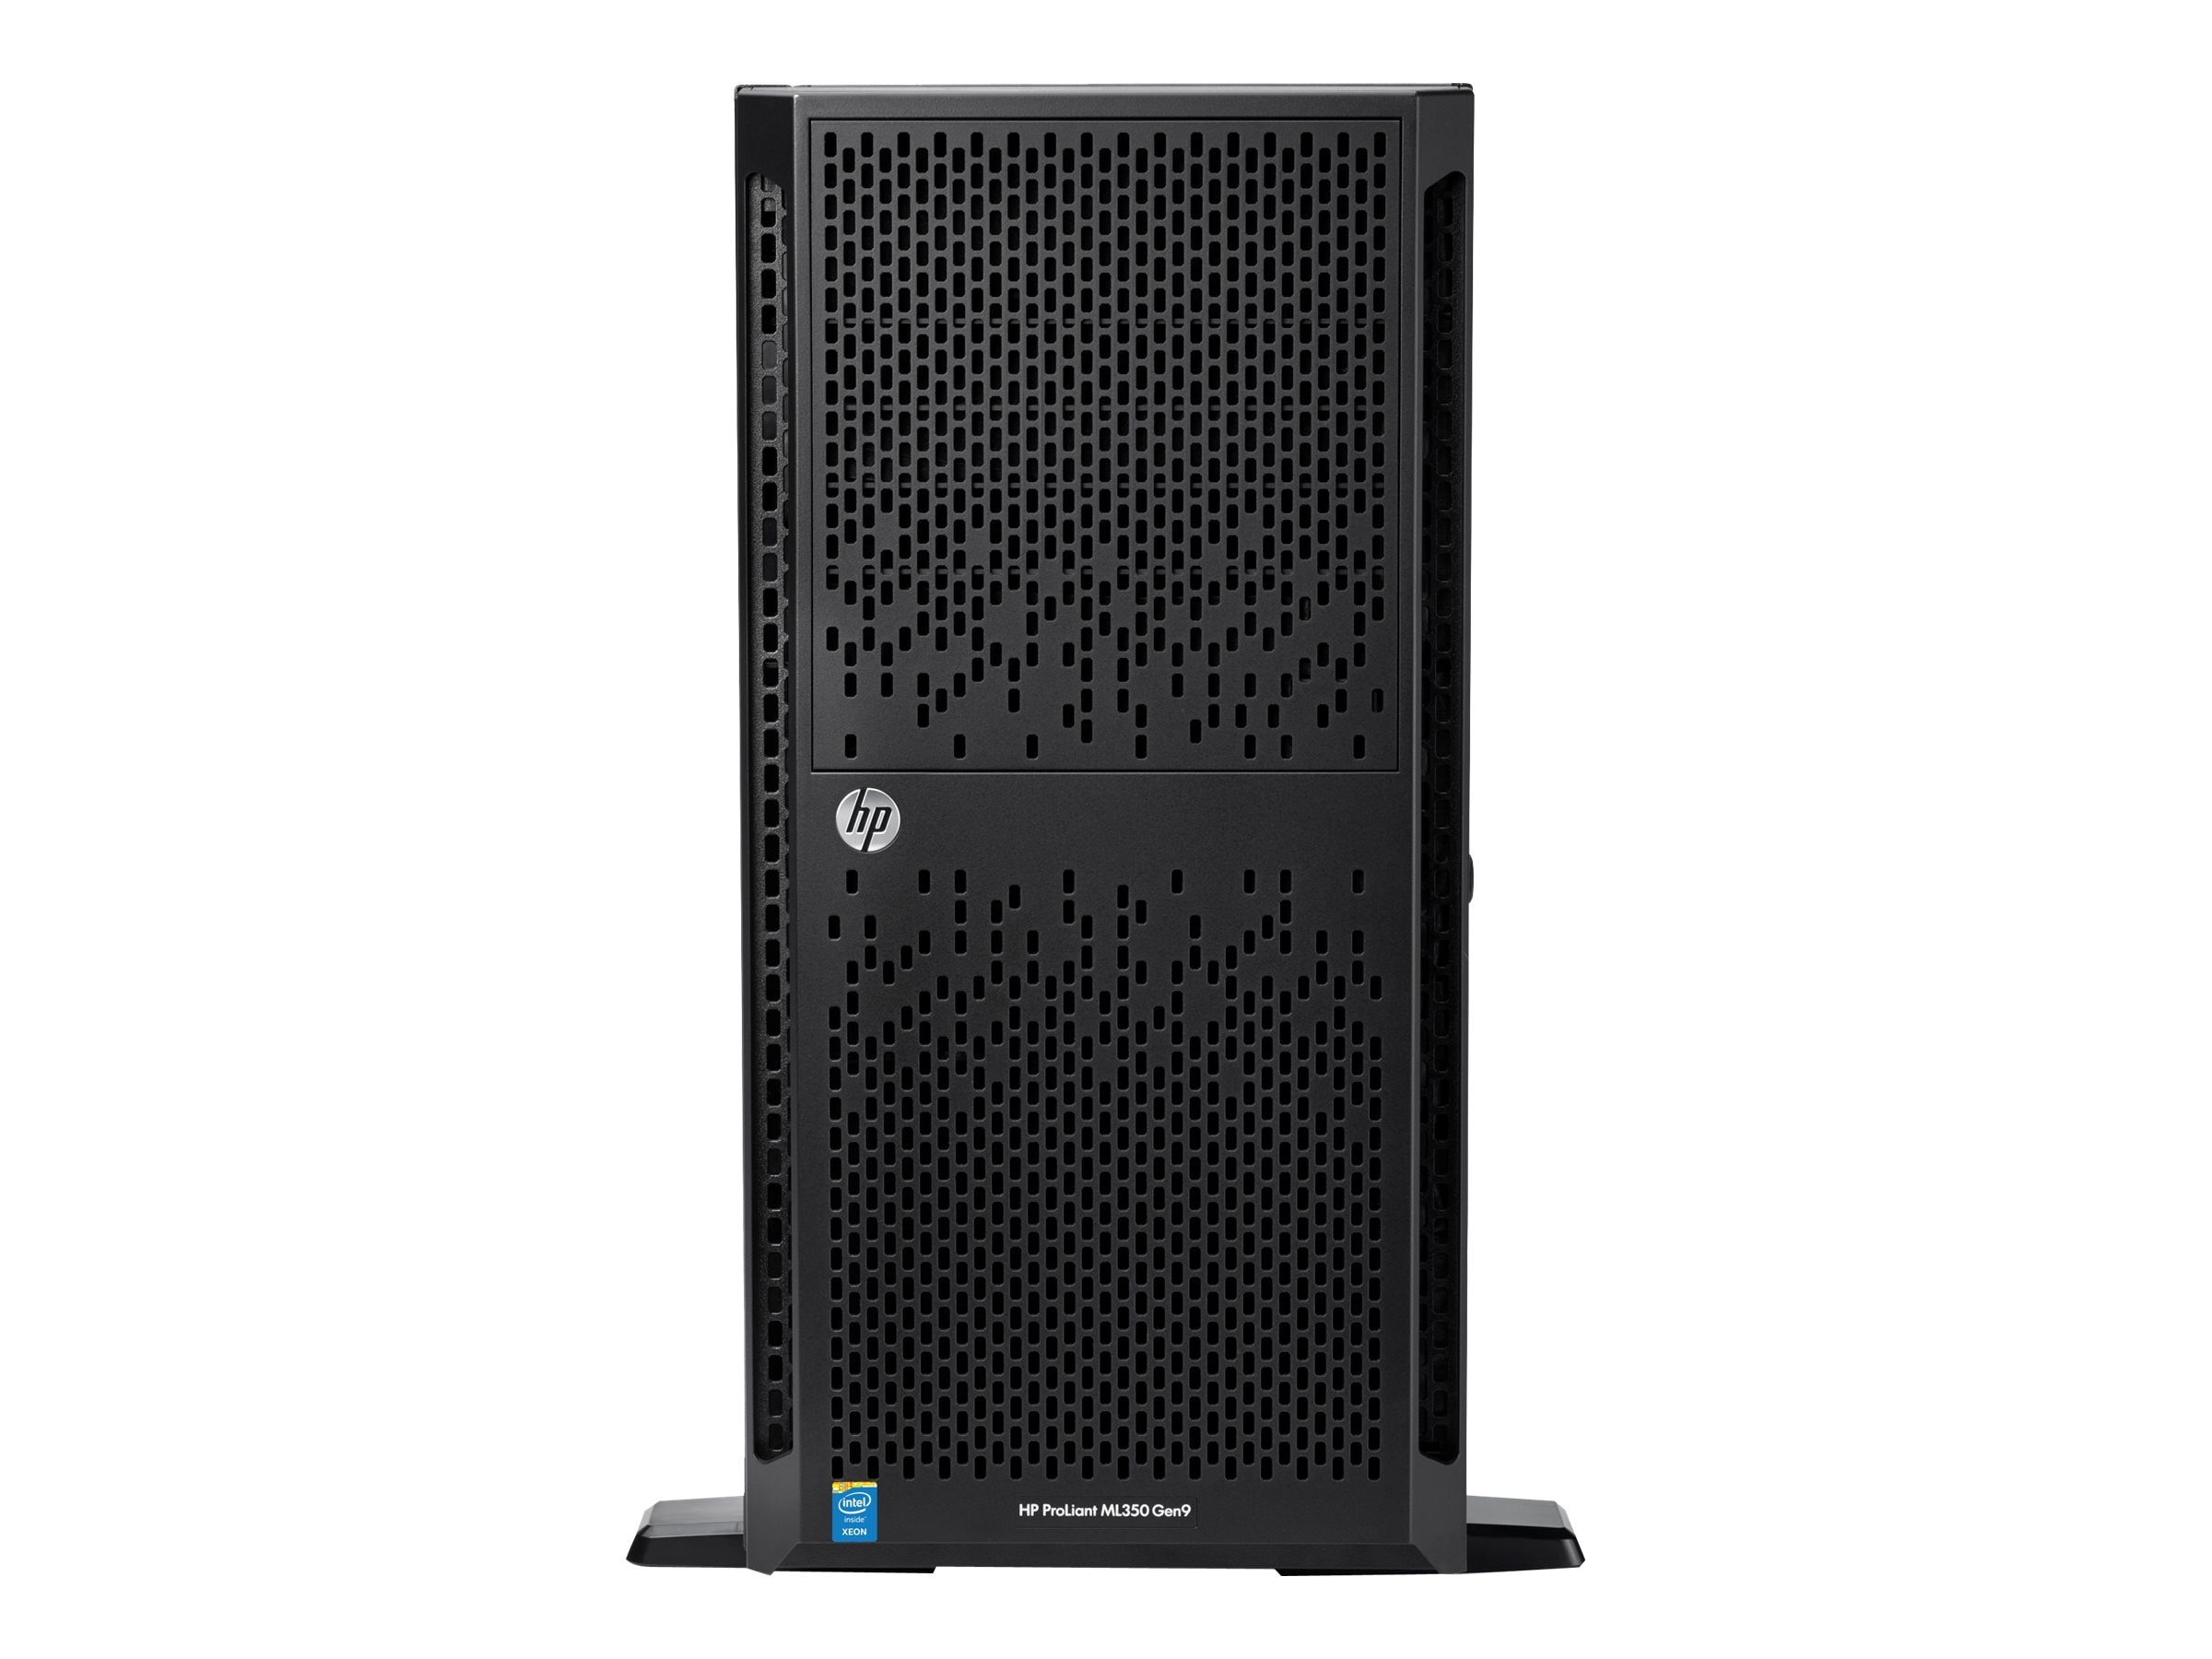 HPE ProLiant ML350 Gen9 Tower Xeon 8C E5-2609 v4 1.7GHz 8GB 8x3.5 Bays B140i 4xGbE 500W